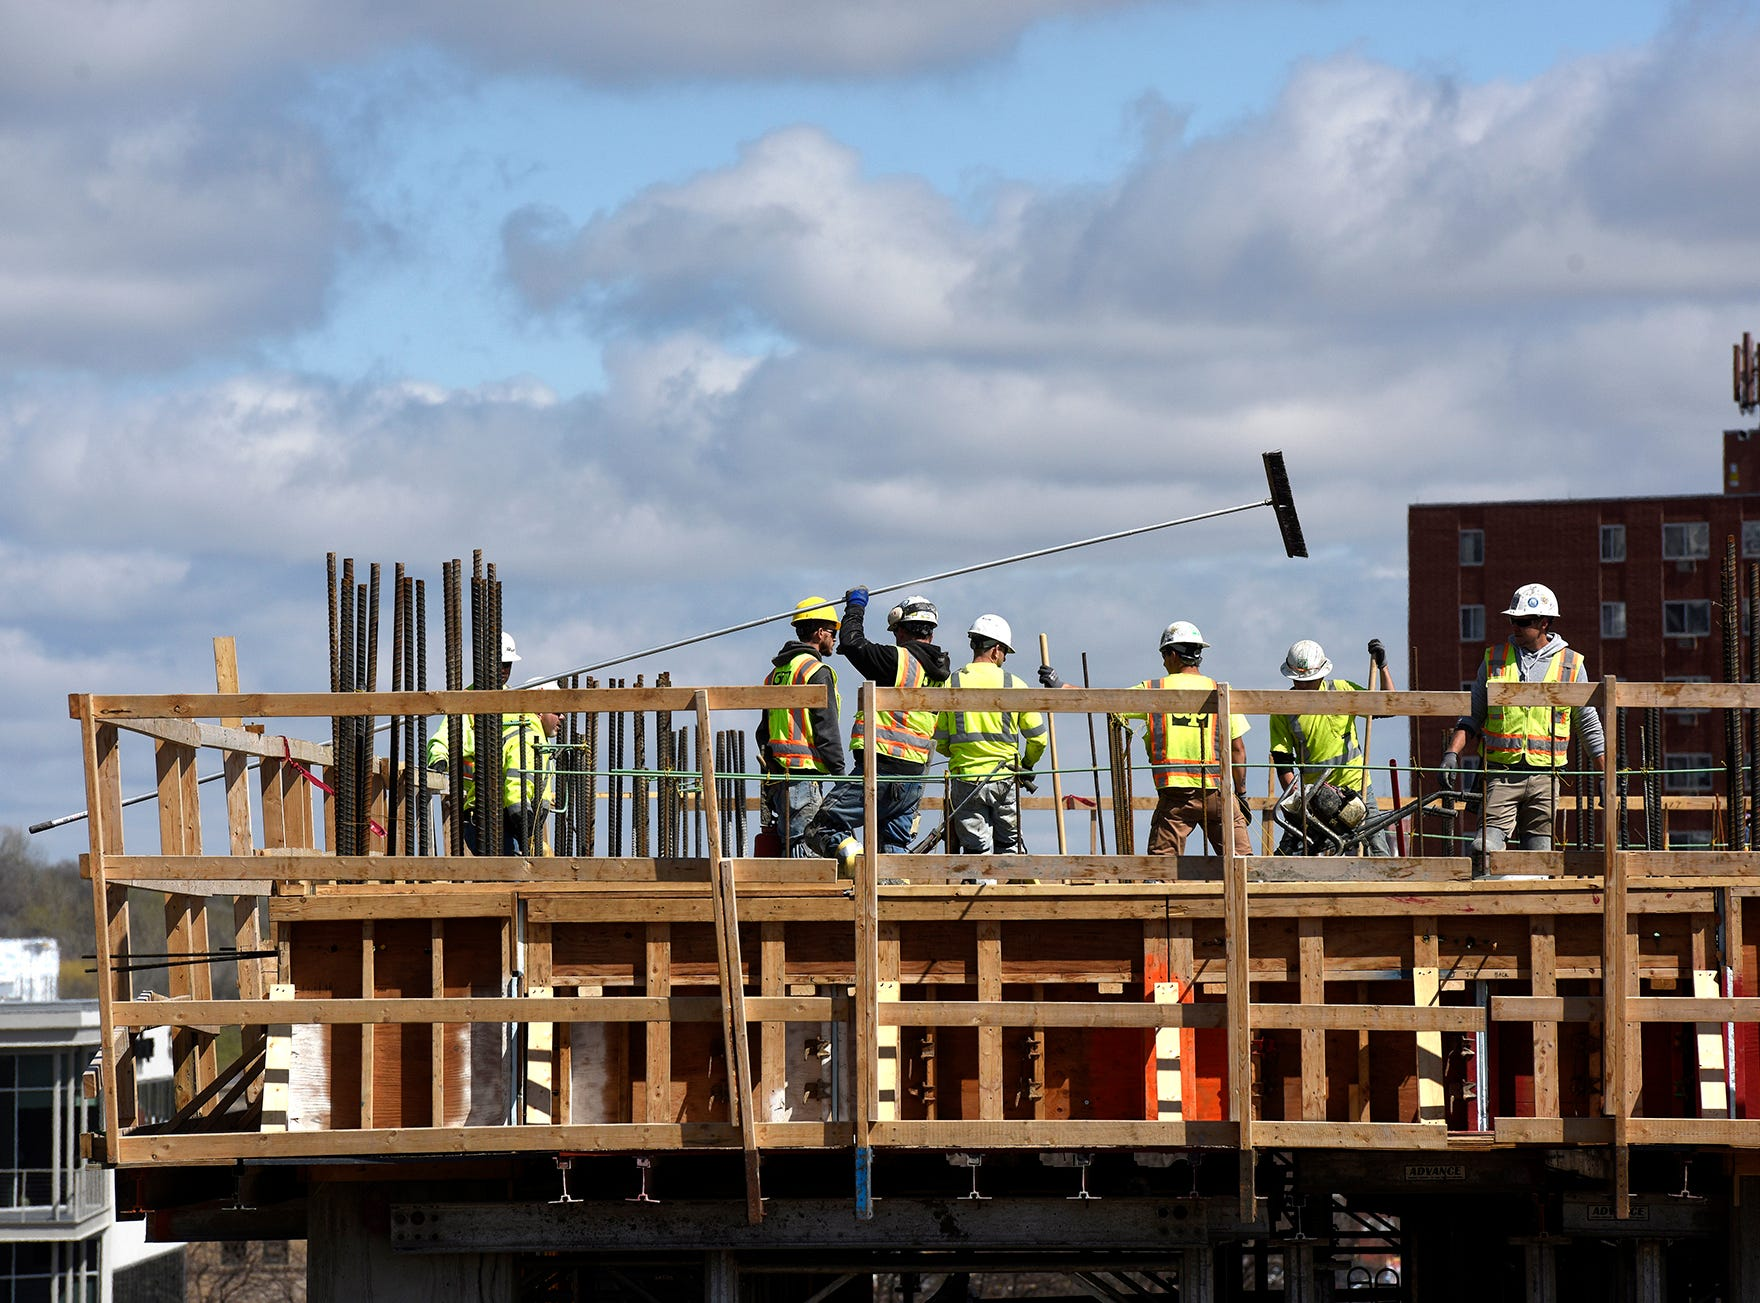 Construction crews work concrete on one of the top levels of the new parking ramp at the Village on the River development in downtown Sioux Falls on Thursday, May 2.